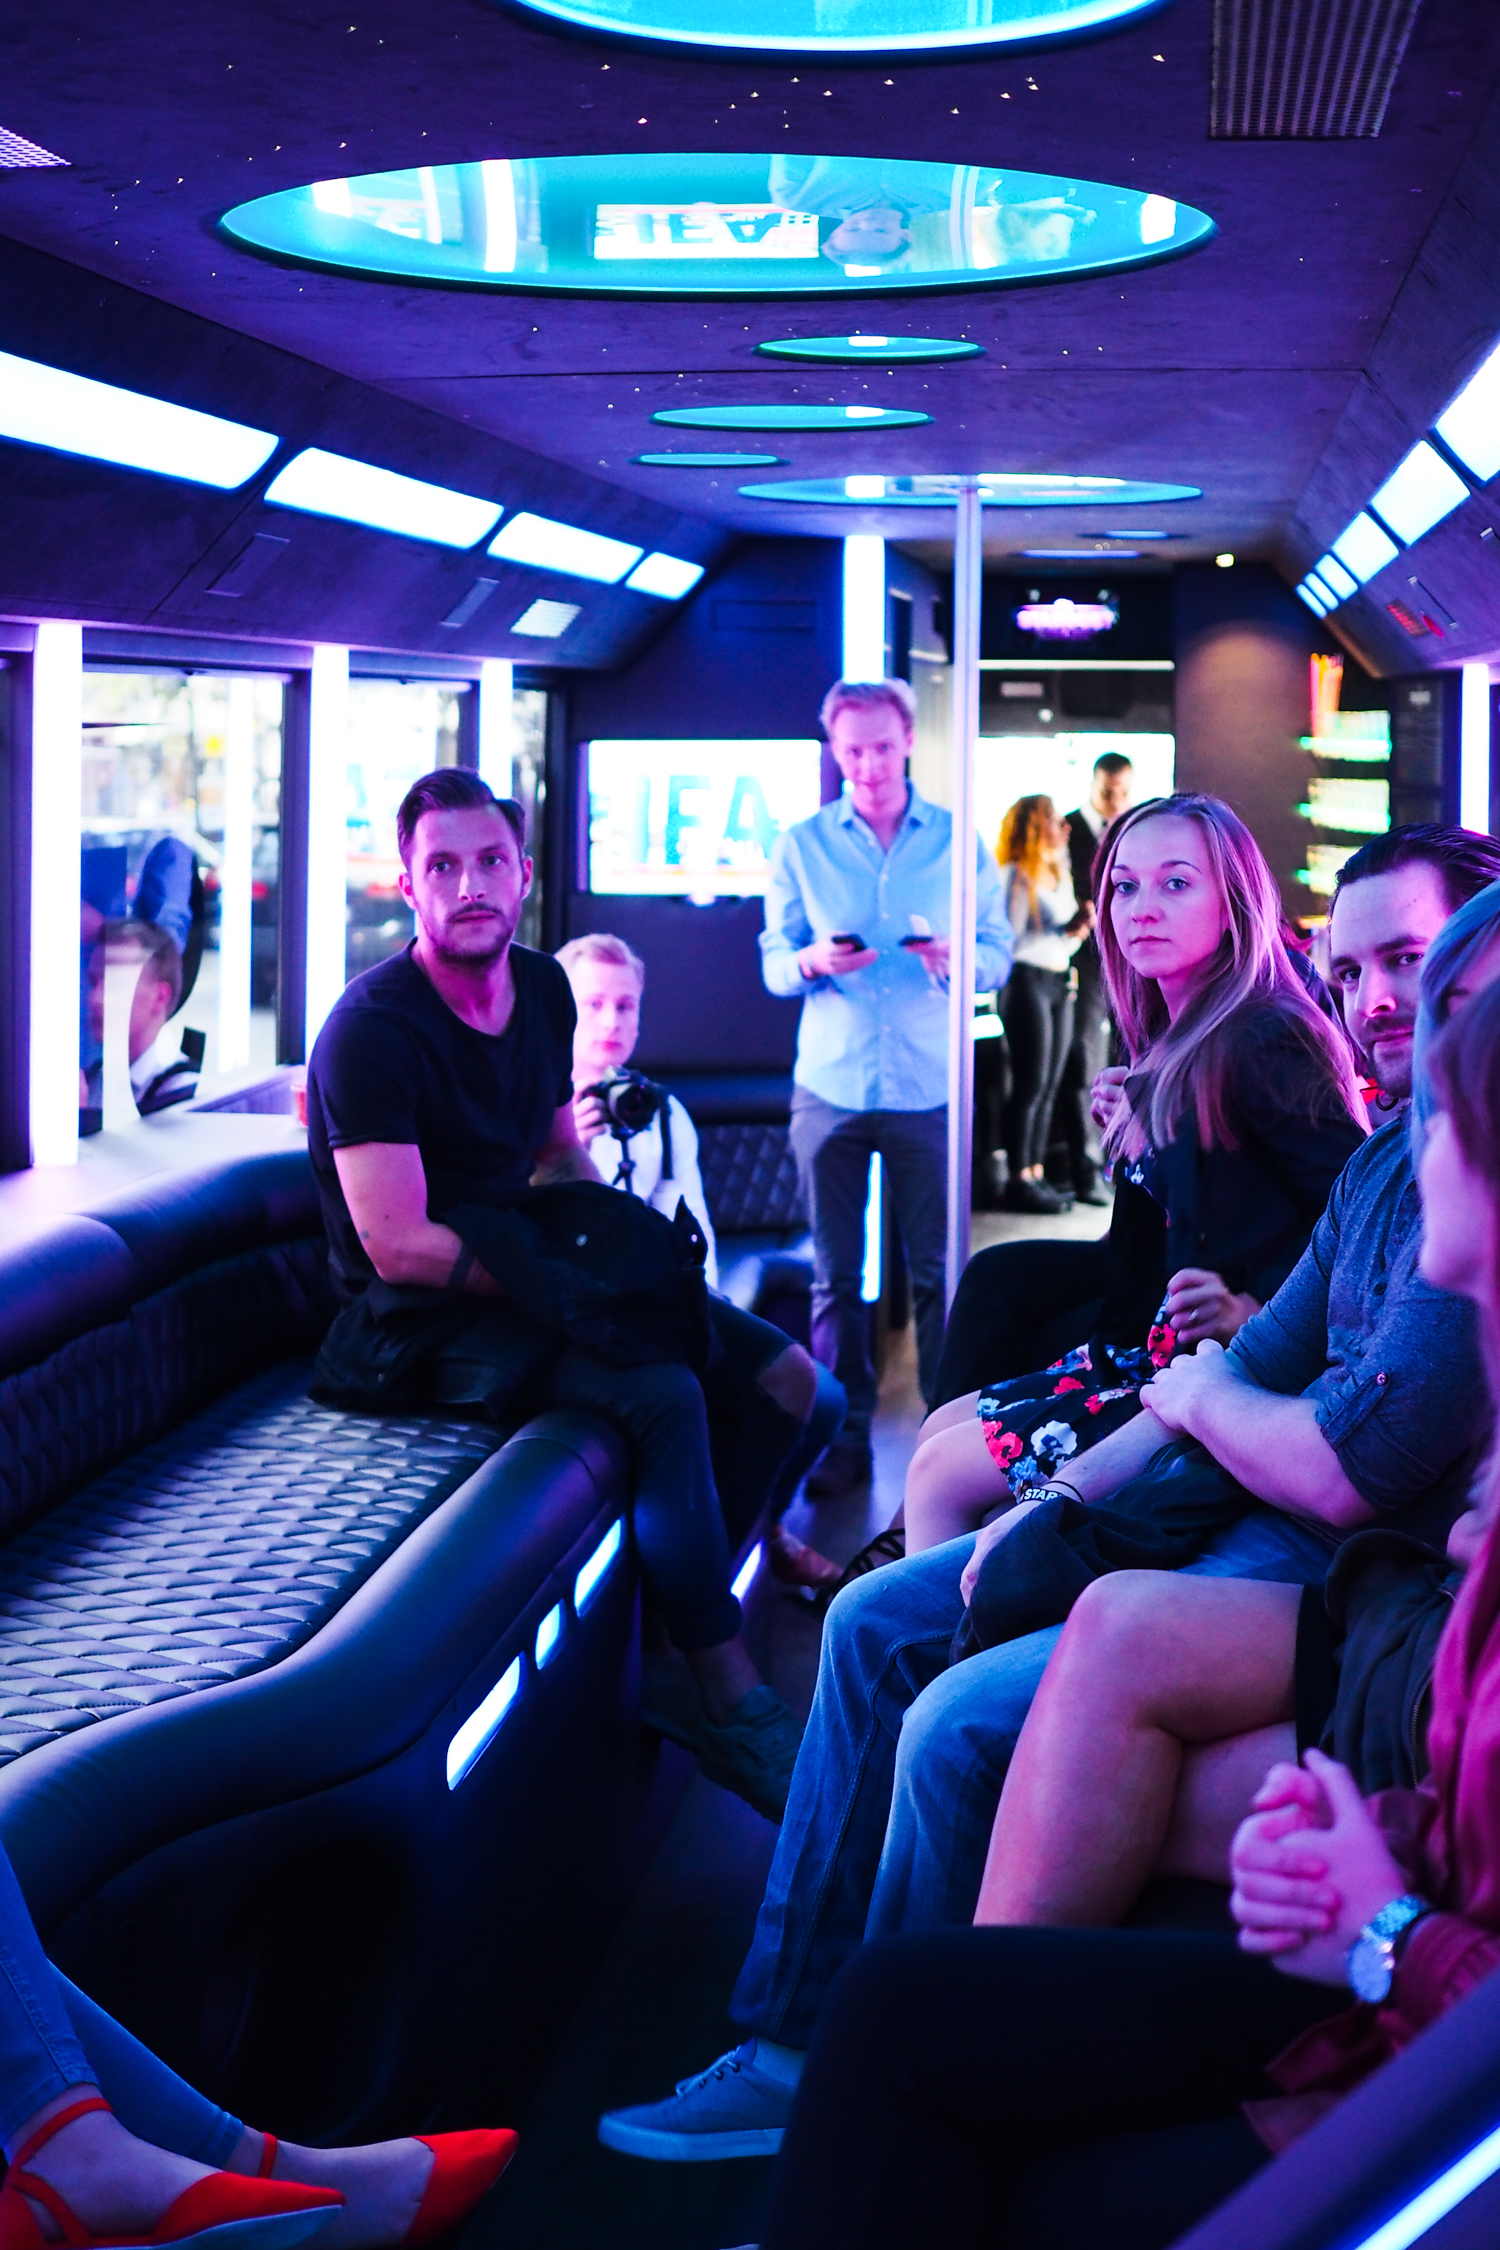 Please observe the general looks of fear as we all boarded the partybus, not knowing what was in store for us. Please also note stripper pole.